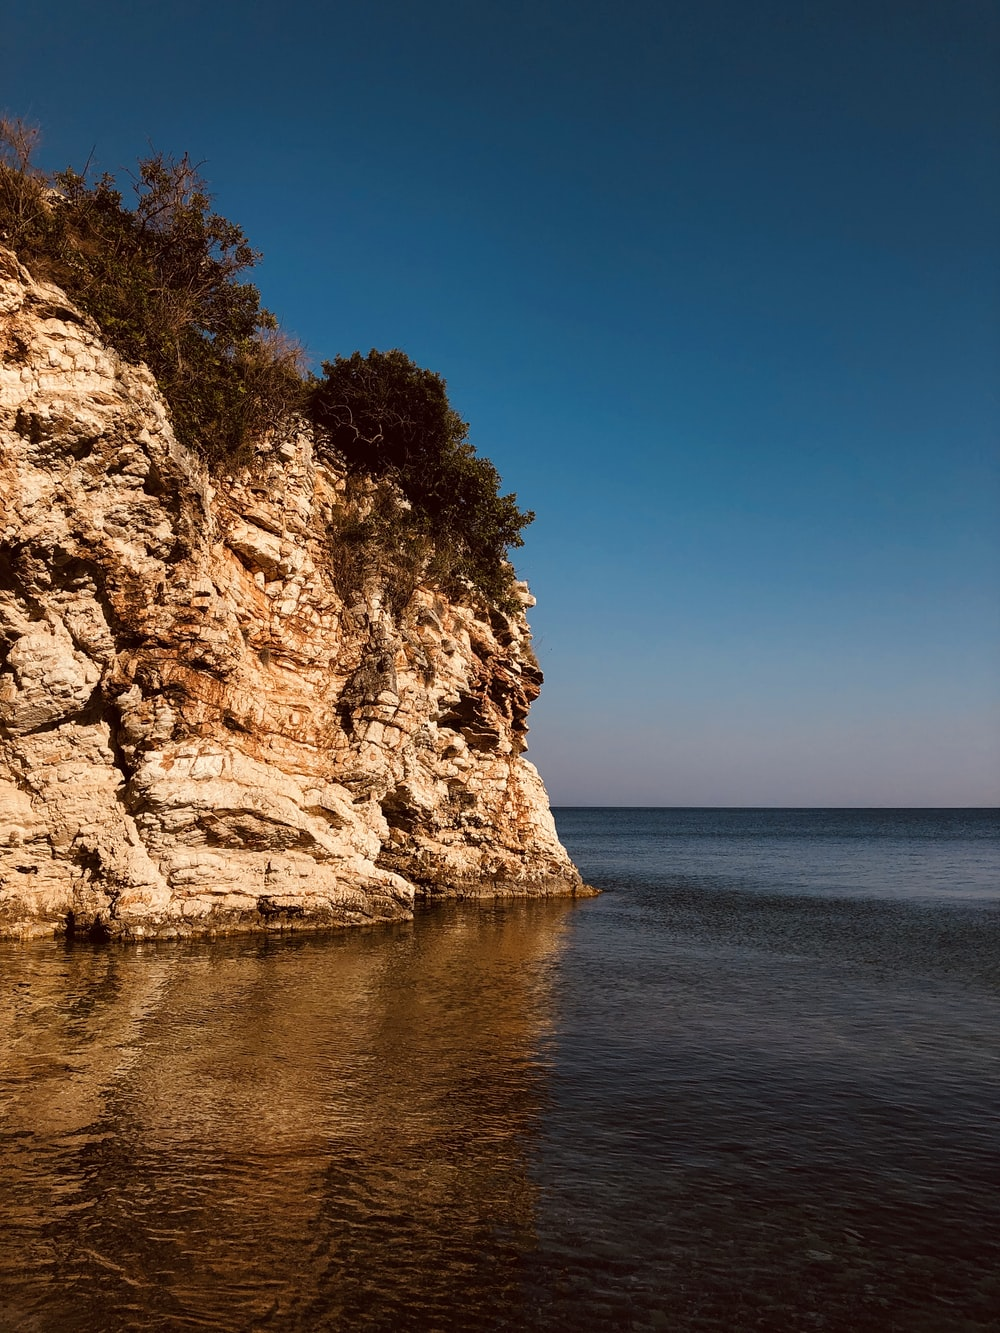 mountain cliff fronting the sea